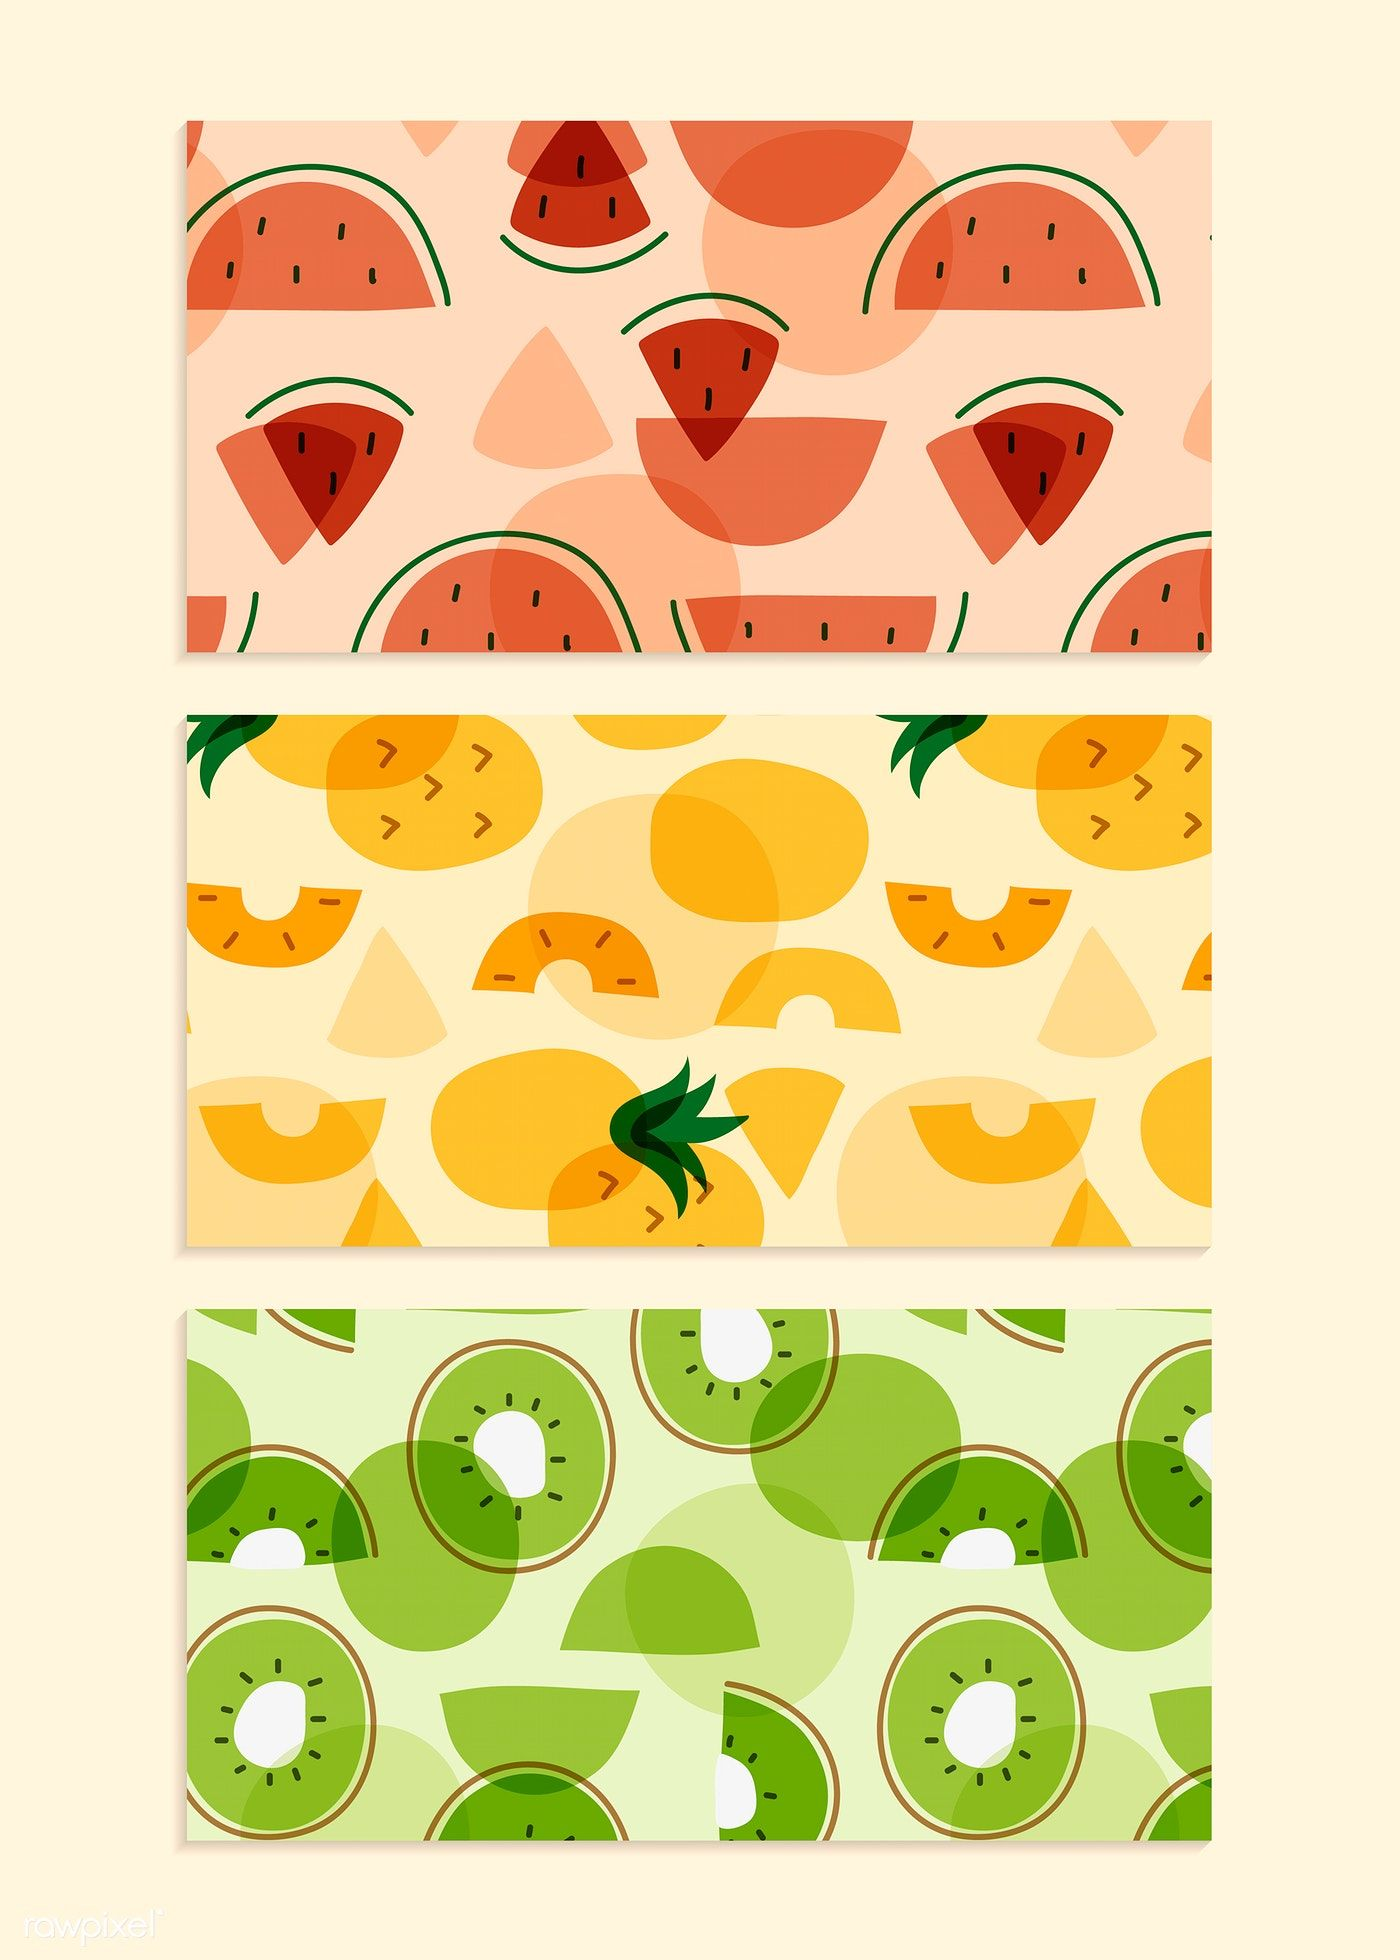 Tropical fruit pattern collection vectors | free image by rawpixel.com / busbus / NingZk V. #tropicalpattern